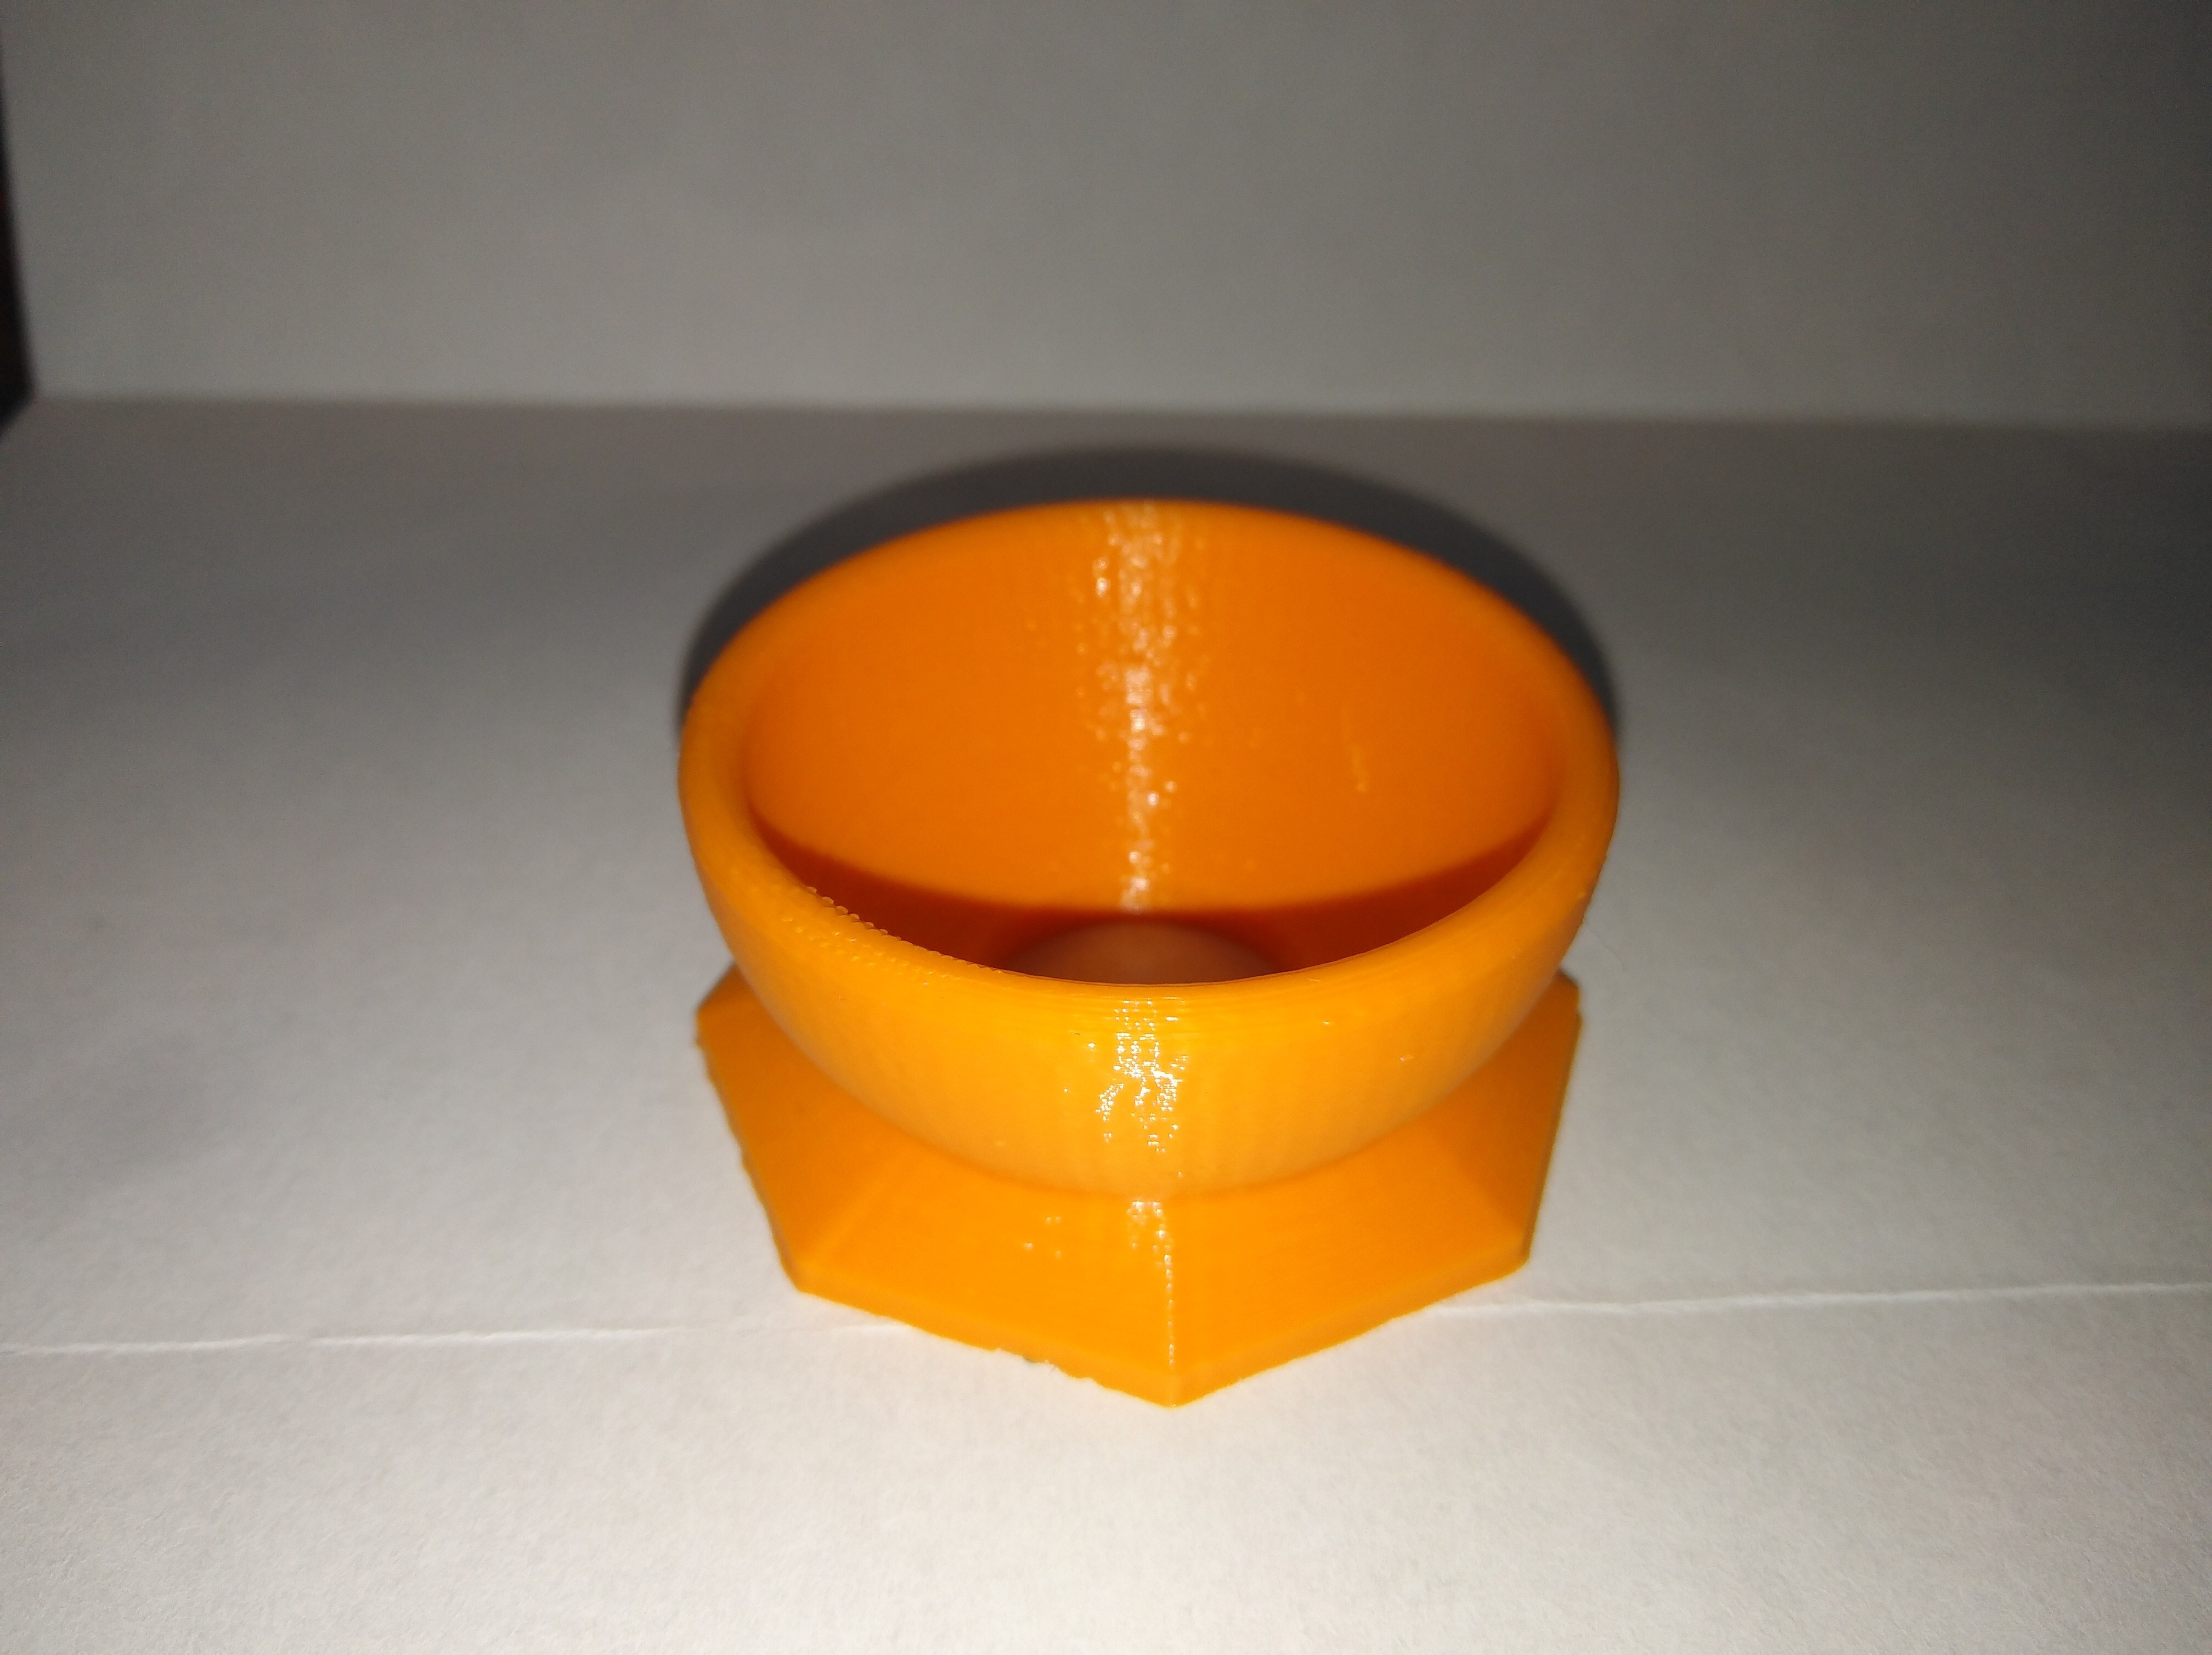 IMG_20180408_194200.jpg Download free STL file Egg cup • 3D print object, LLH